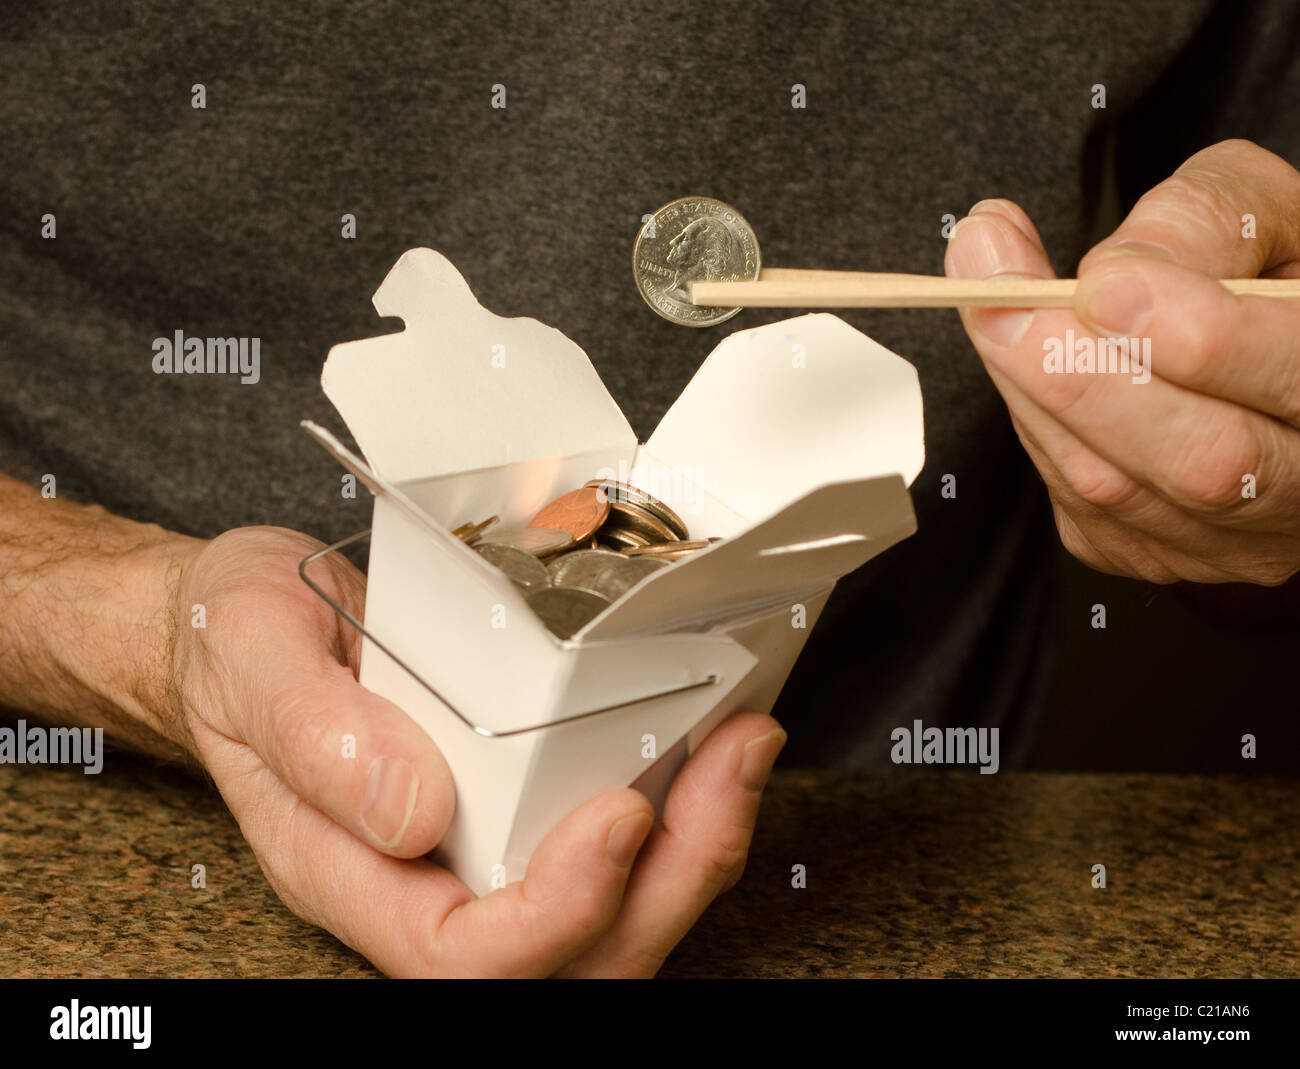 man holding Chinese food container containing US currency - Stock Image